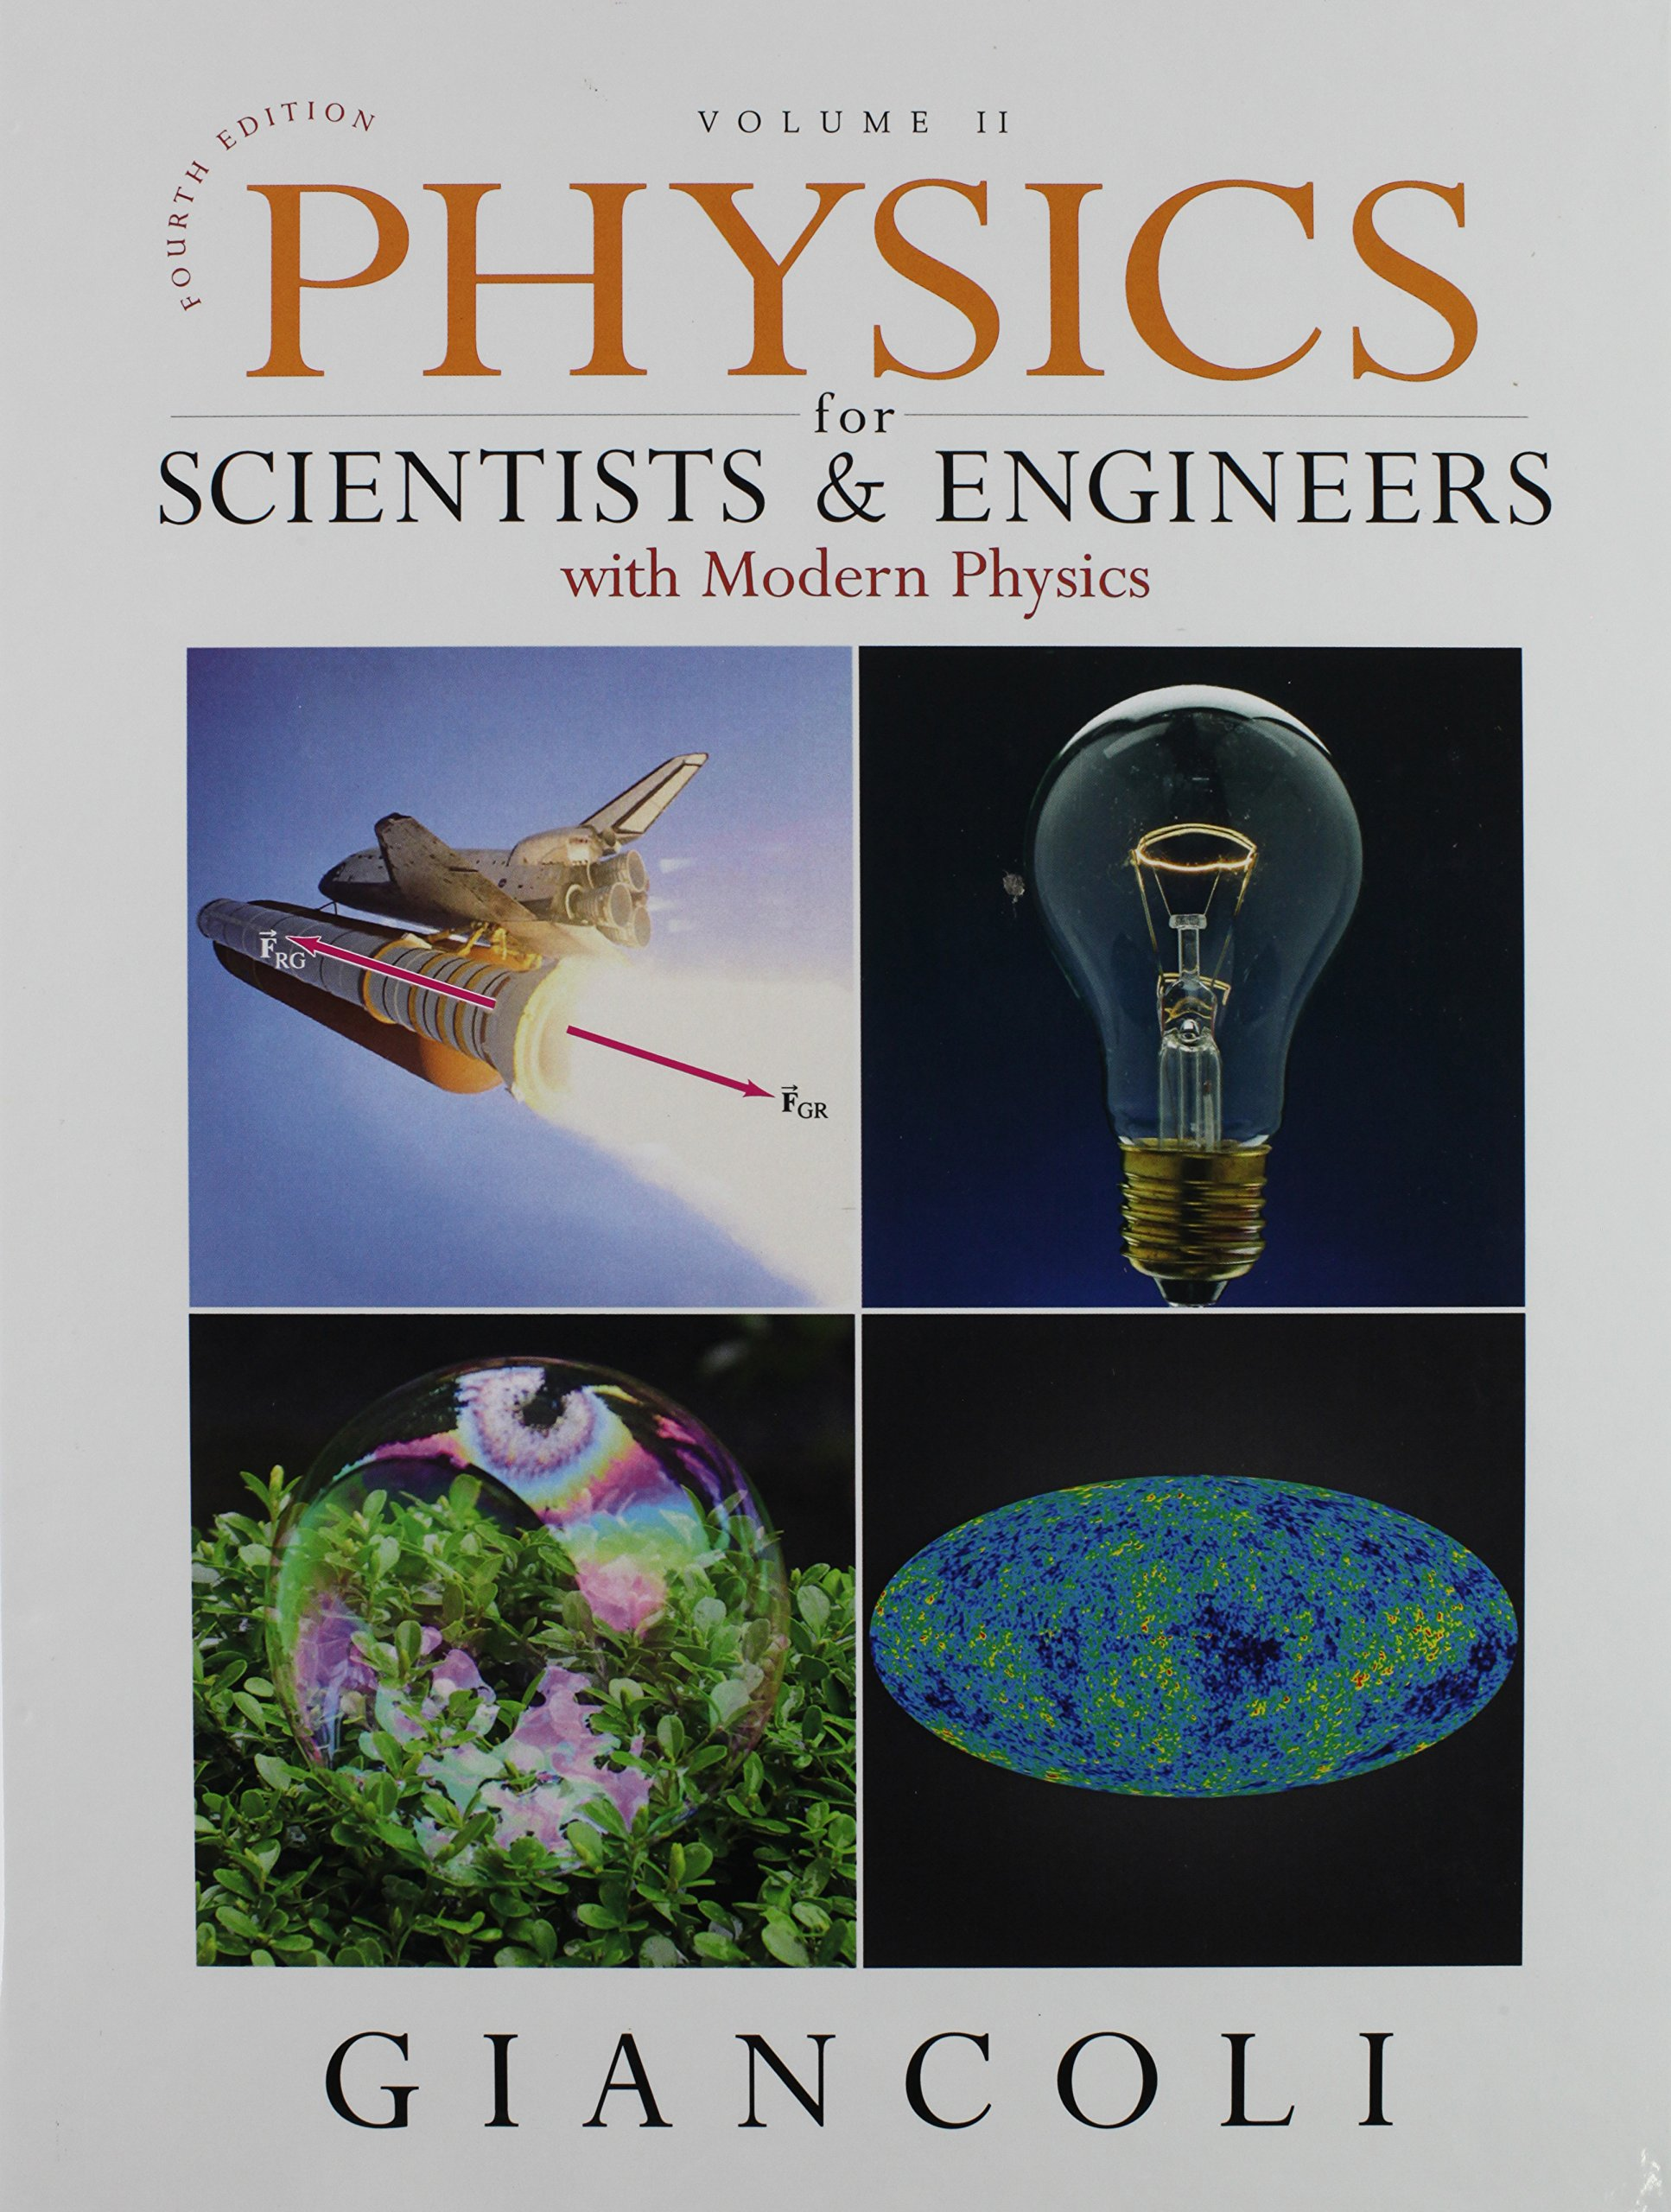 Buy Physics for Scientists & Engineers with Modern Physics Book Online at  Low Prices in India | Physics for Scientists & Engineers with Modern Physics  ...